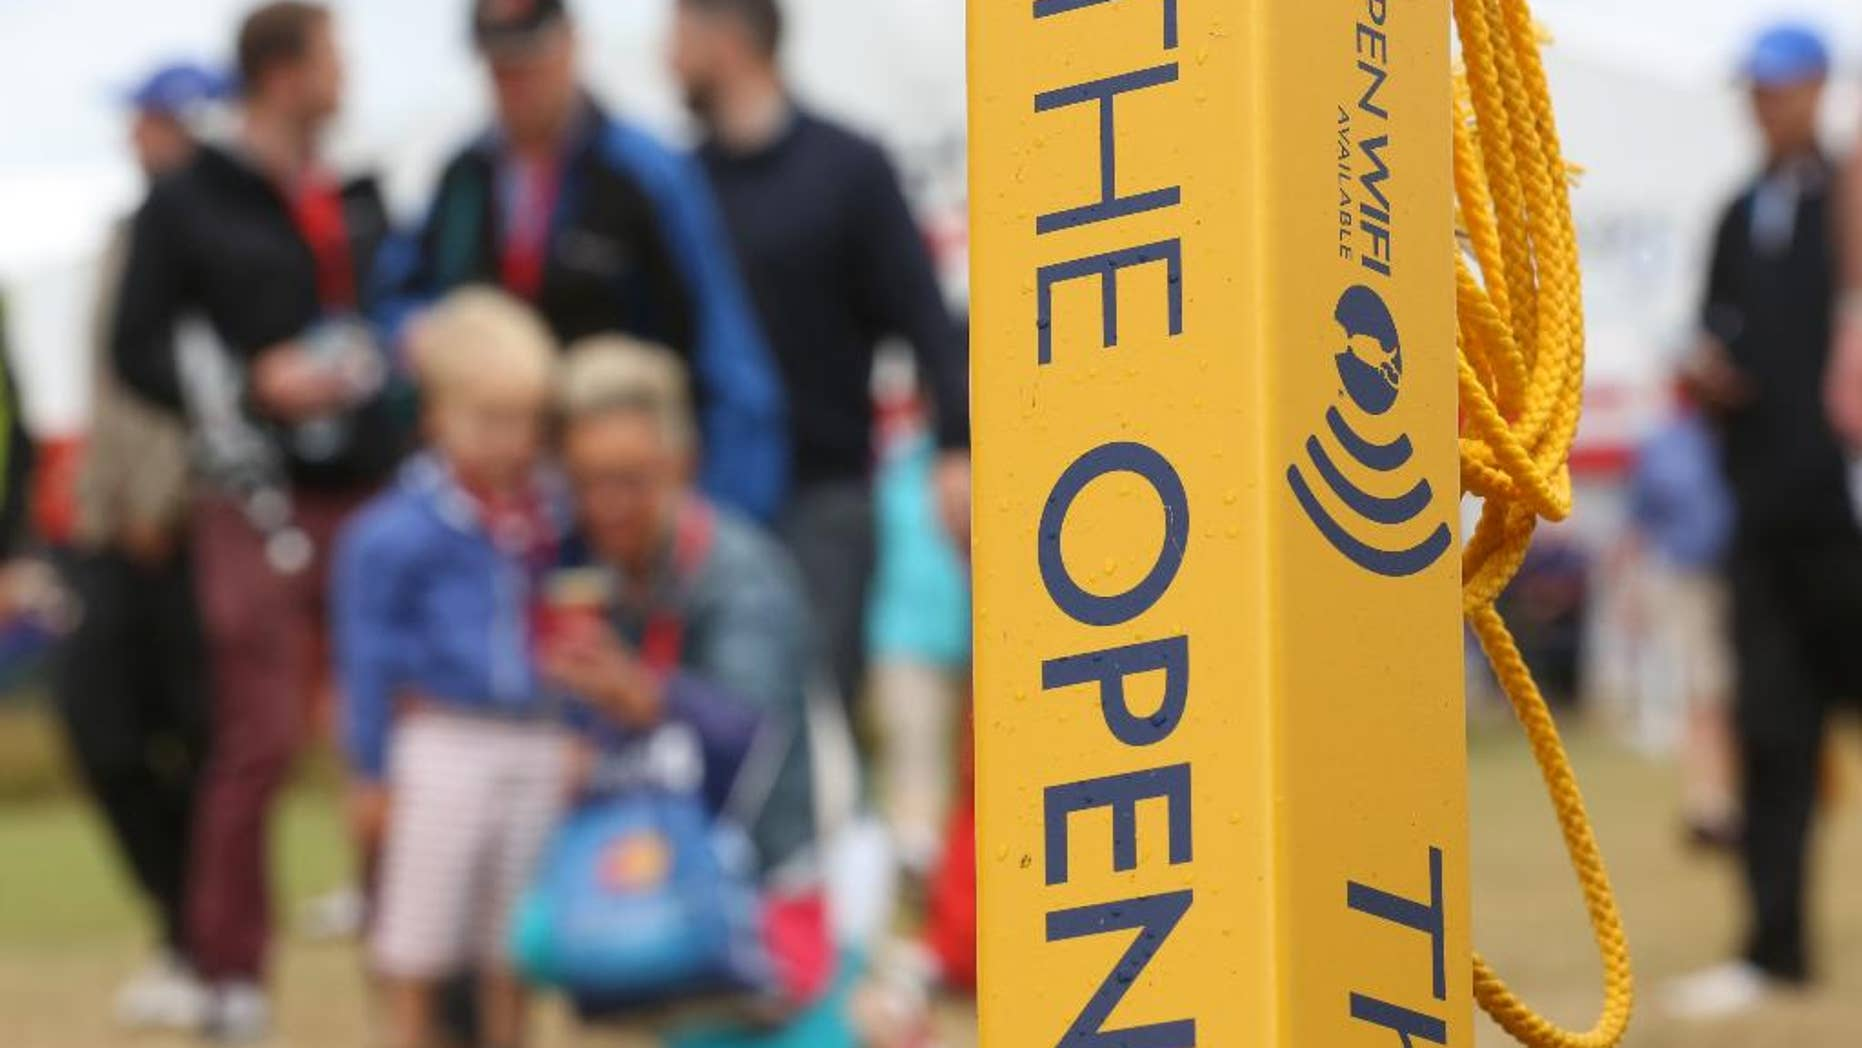 A sign advertising WiFi near the 3rd hole on the course at the Royal Liverpool golf club where the British Open Golf championship will start Thursday July 17, in Hoylake, England, Wednesday July 16, 2014. (AP Photo/Jon Super)